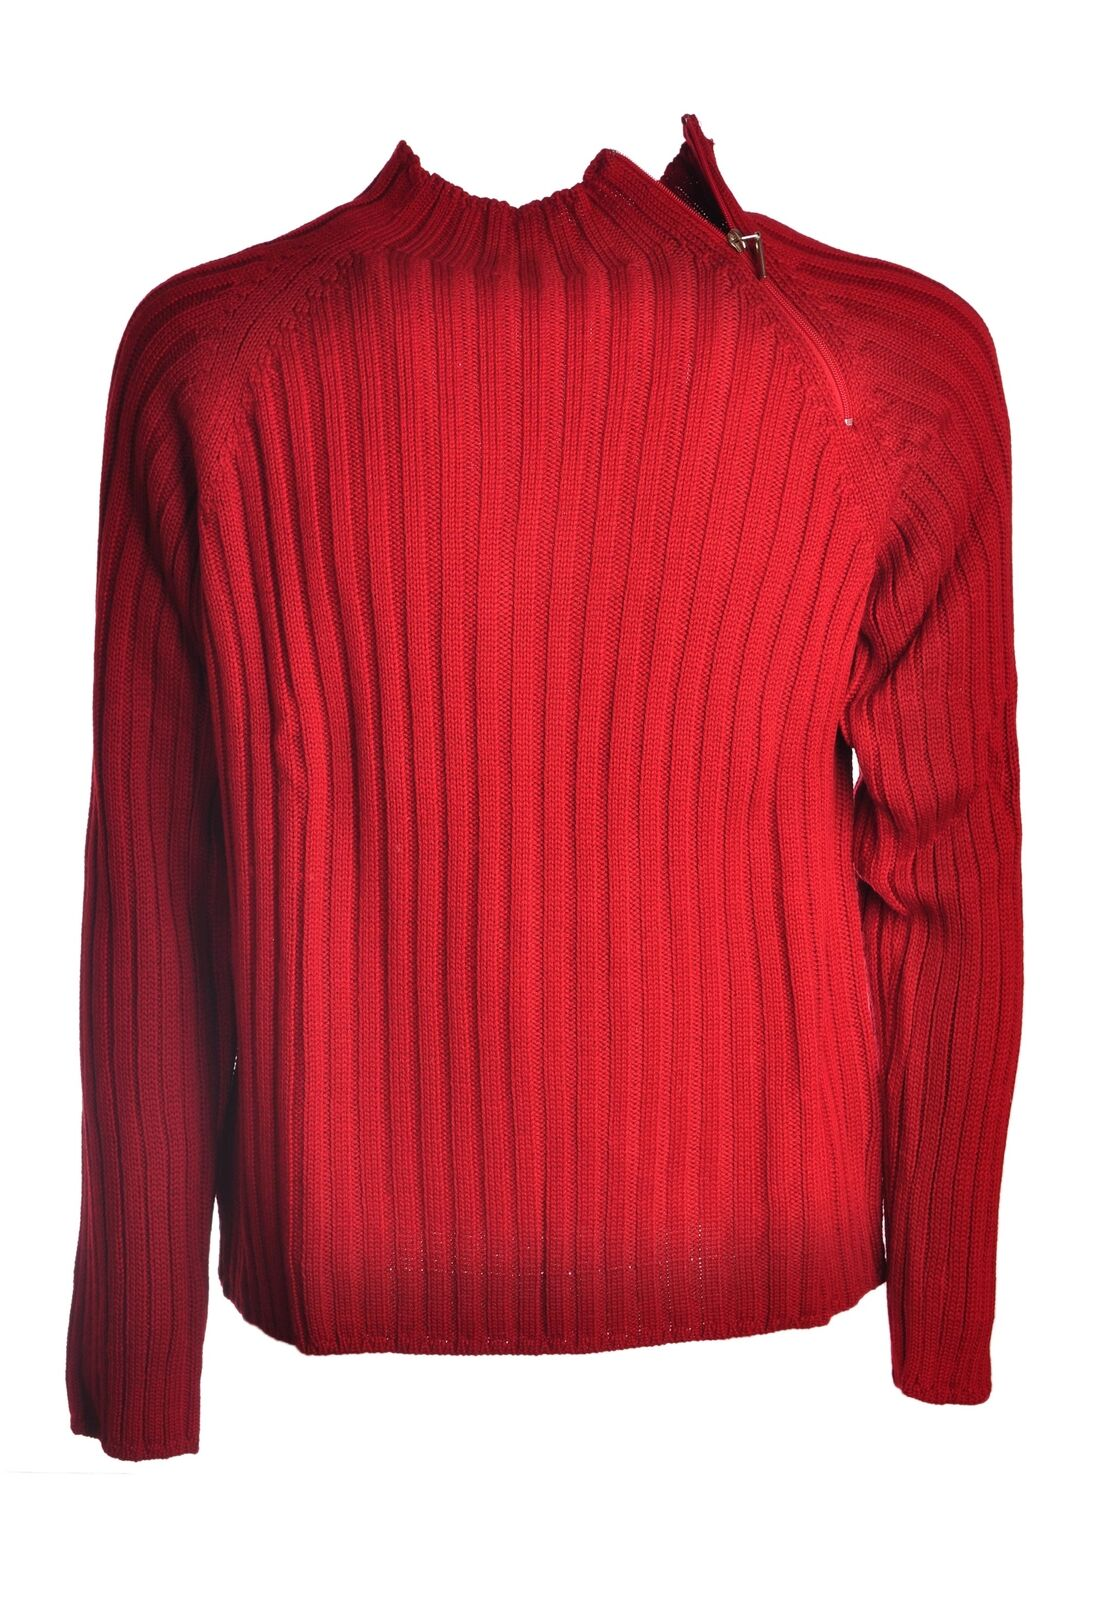 Cube  -  Sweaters - Male - Red - 4365126A184042